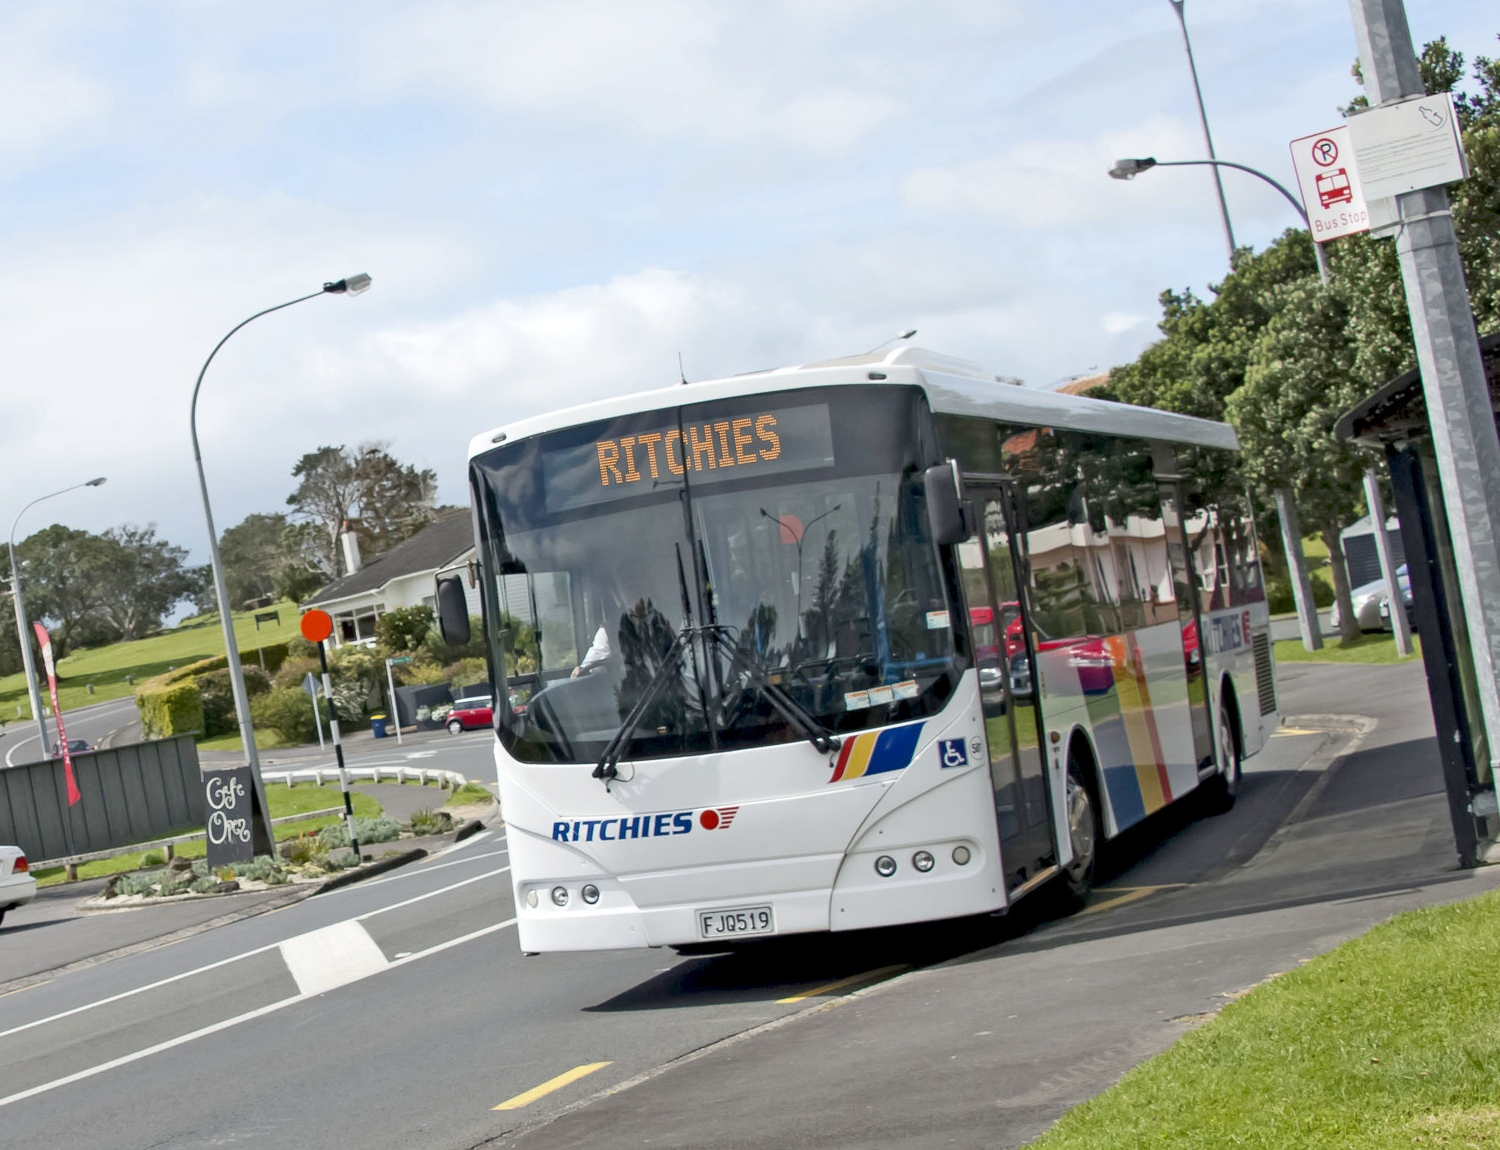 Ritchies bus at bus stop.jpg